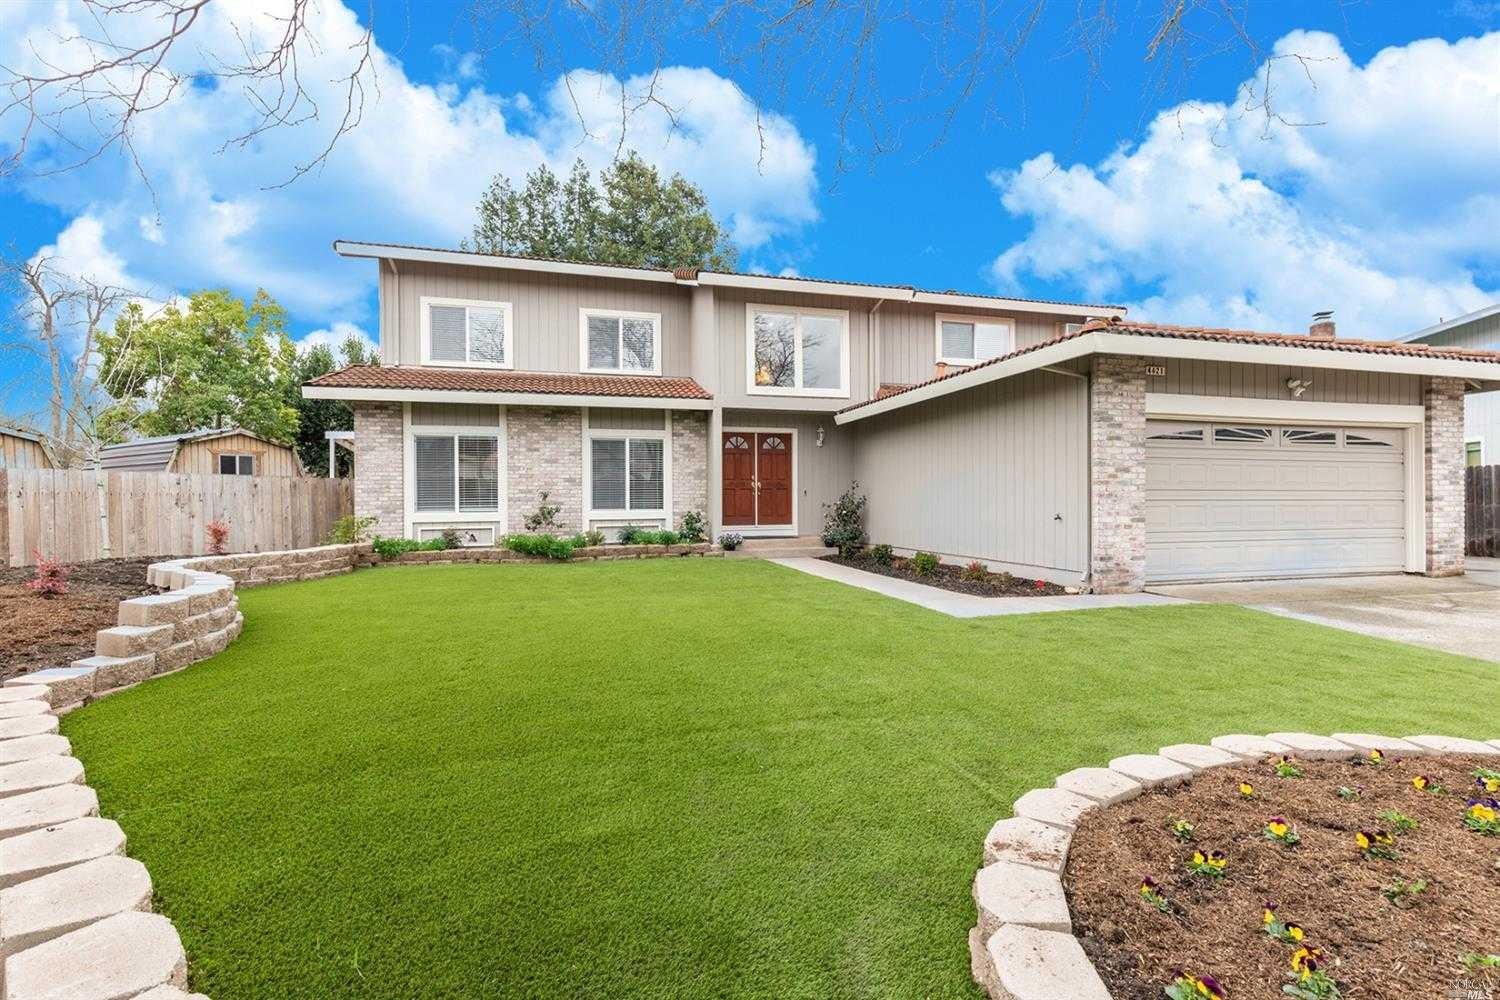 $800,000 - 5Br/3Ba -  for Sale in Rohnert Park